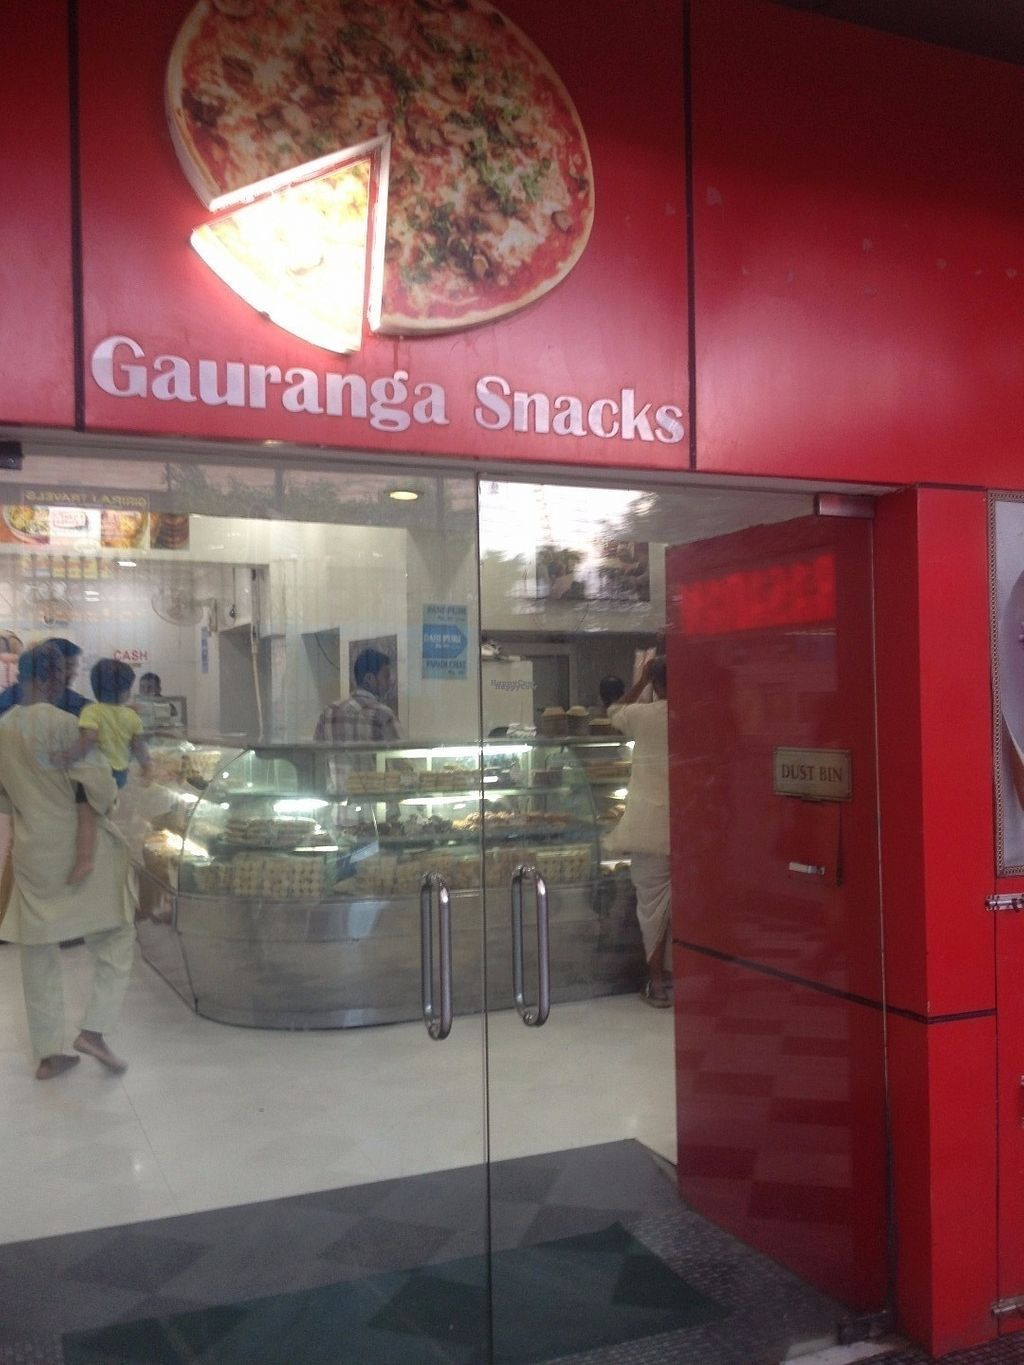 "Photo of Gauranga Snacks  by <a href=""/members/profile/vegan_ryan"">vegan_ryan</a> <br/>Entrance <br/> September 7, 2016  - <a href='/contact/abuse/image/79724/174041'>Report</a>"